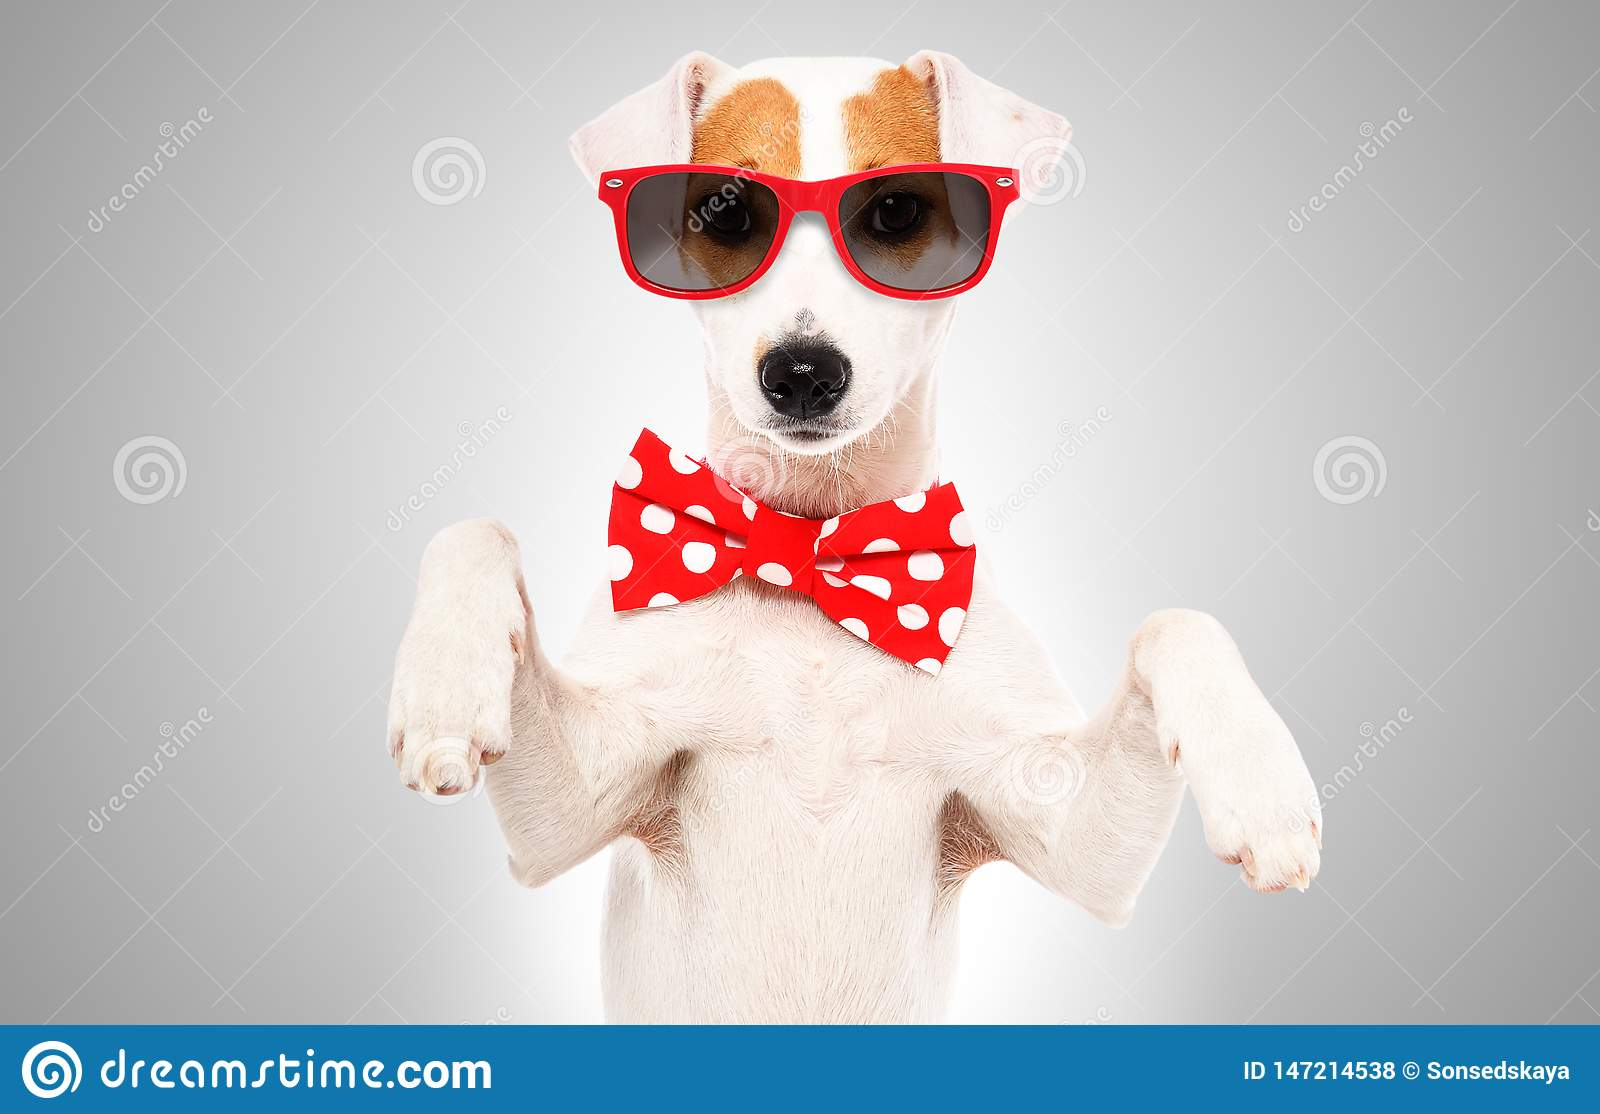 Portrait of funny dog Jack Russell Terrier in a bow tie and sunglasses